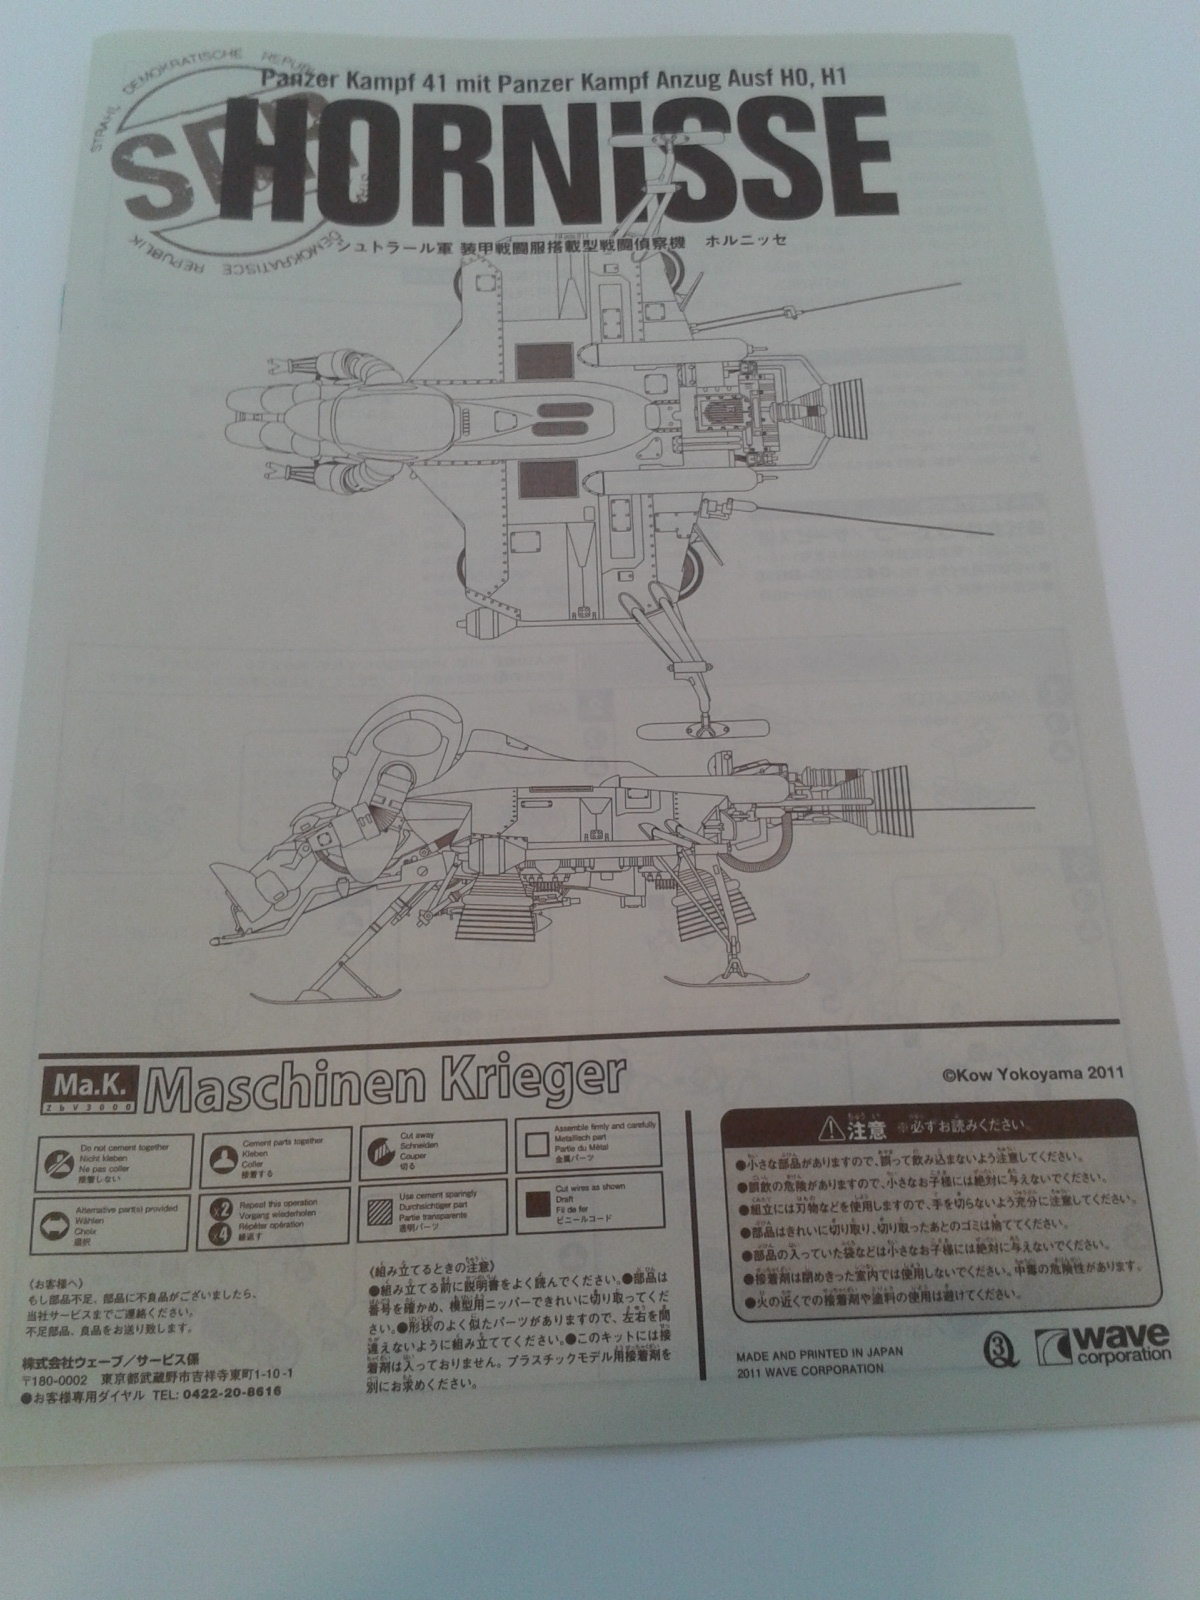 Review kit Ma.k Maschinen Krieger 6.......1/20. Hn2d